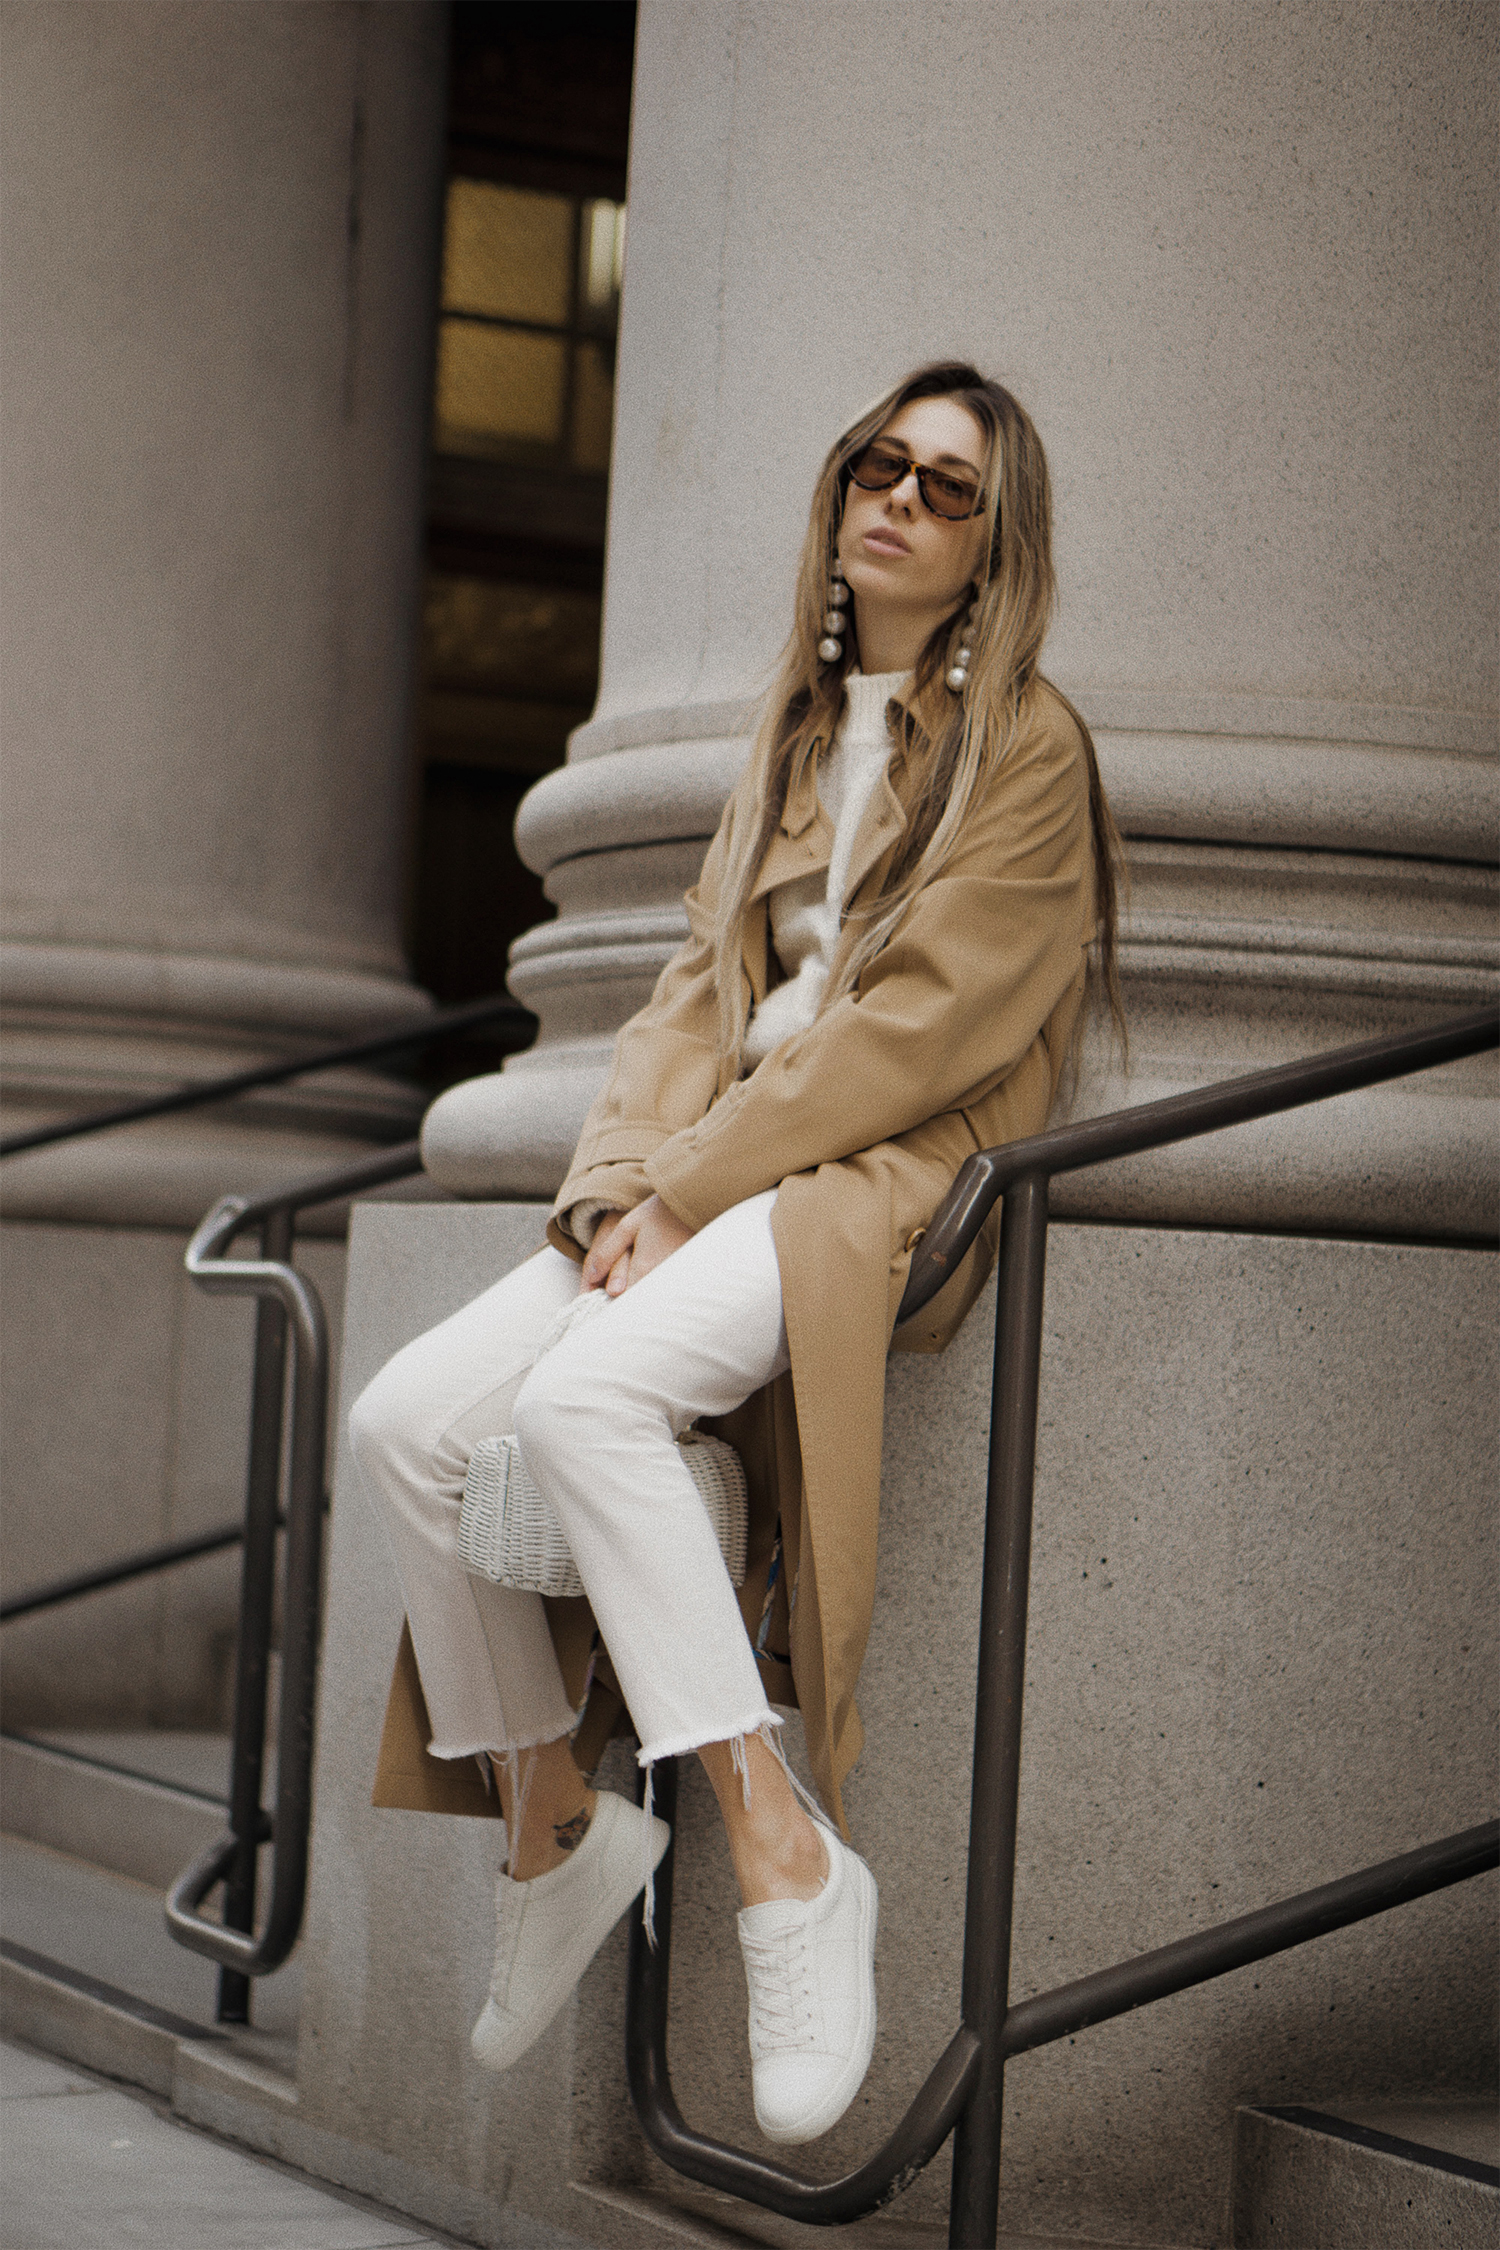 paulsmith_trenchcoat_vinceshoes_wicker_bag_white_outfit_freepeople_lenajuice_thewhiteocean_11